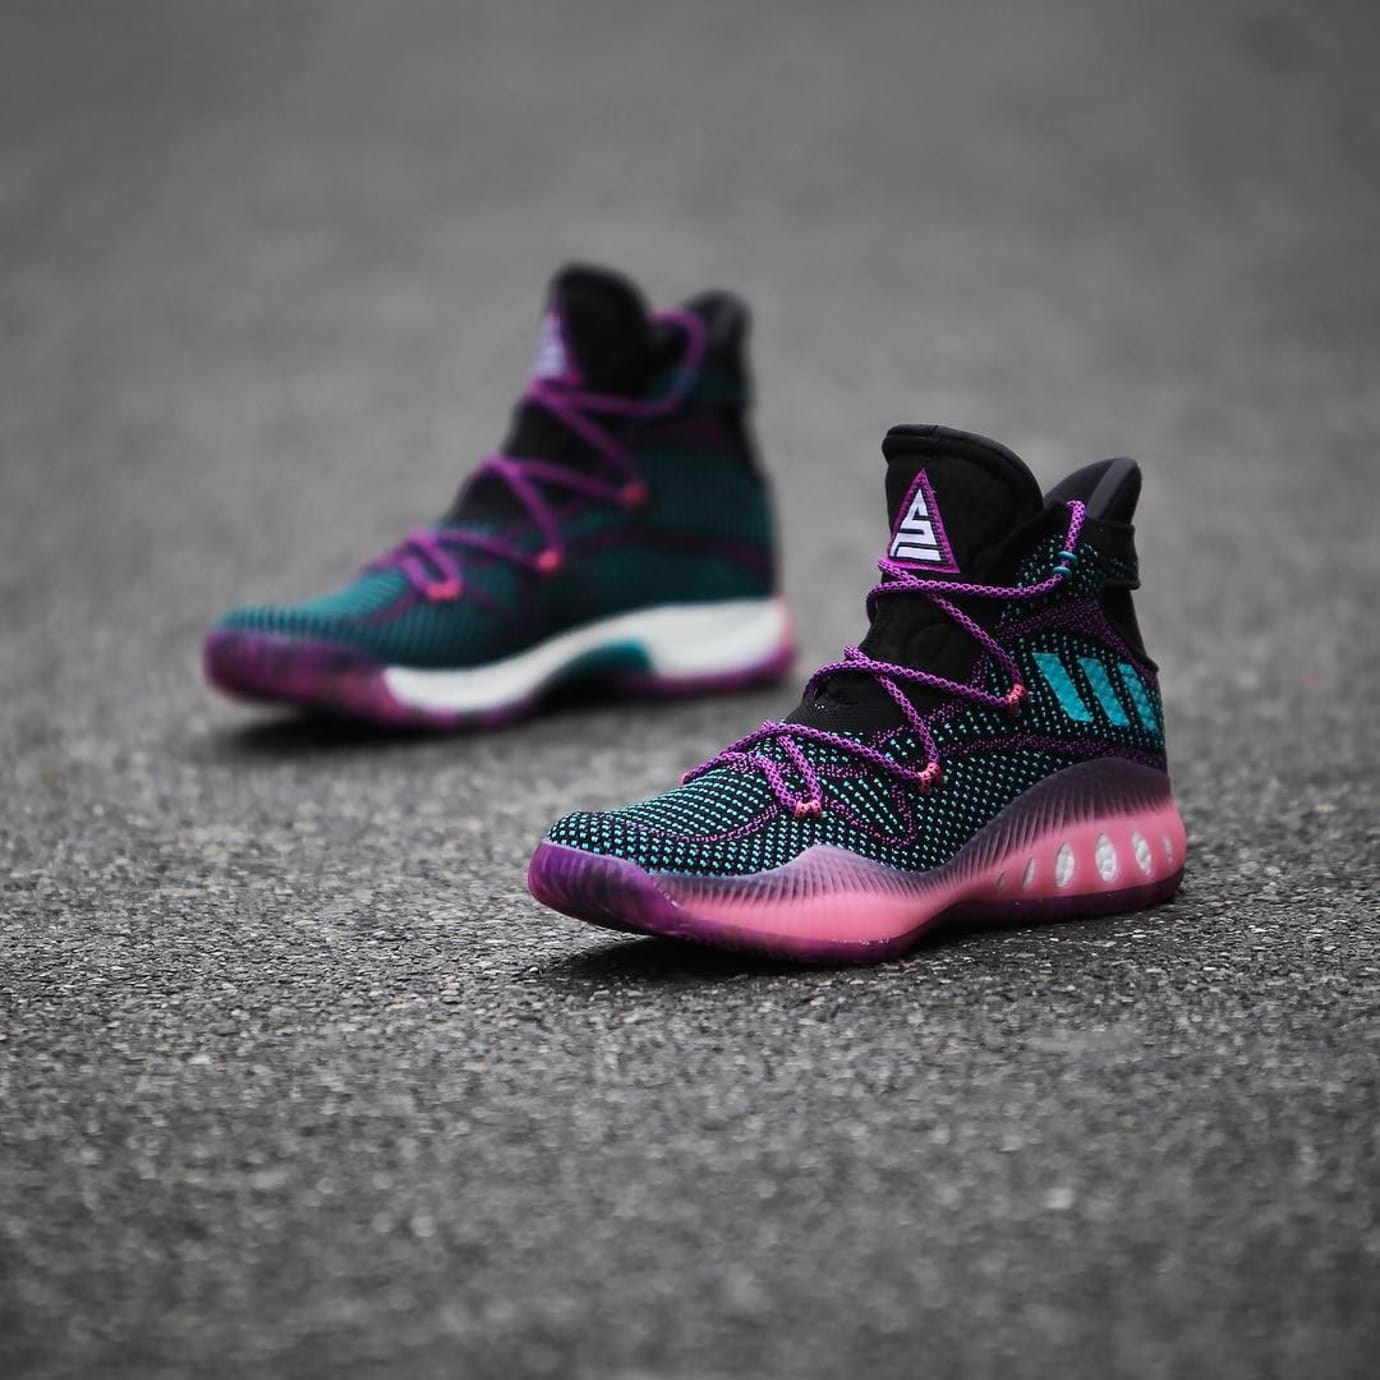 Swaggy P Adidas Crazy Explosive Black Pink PE (5)